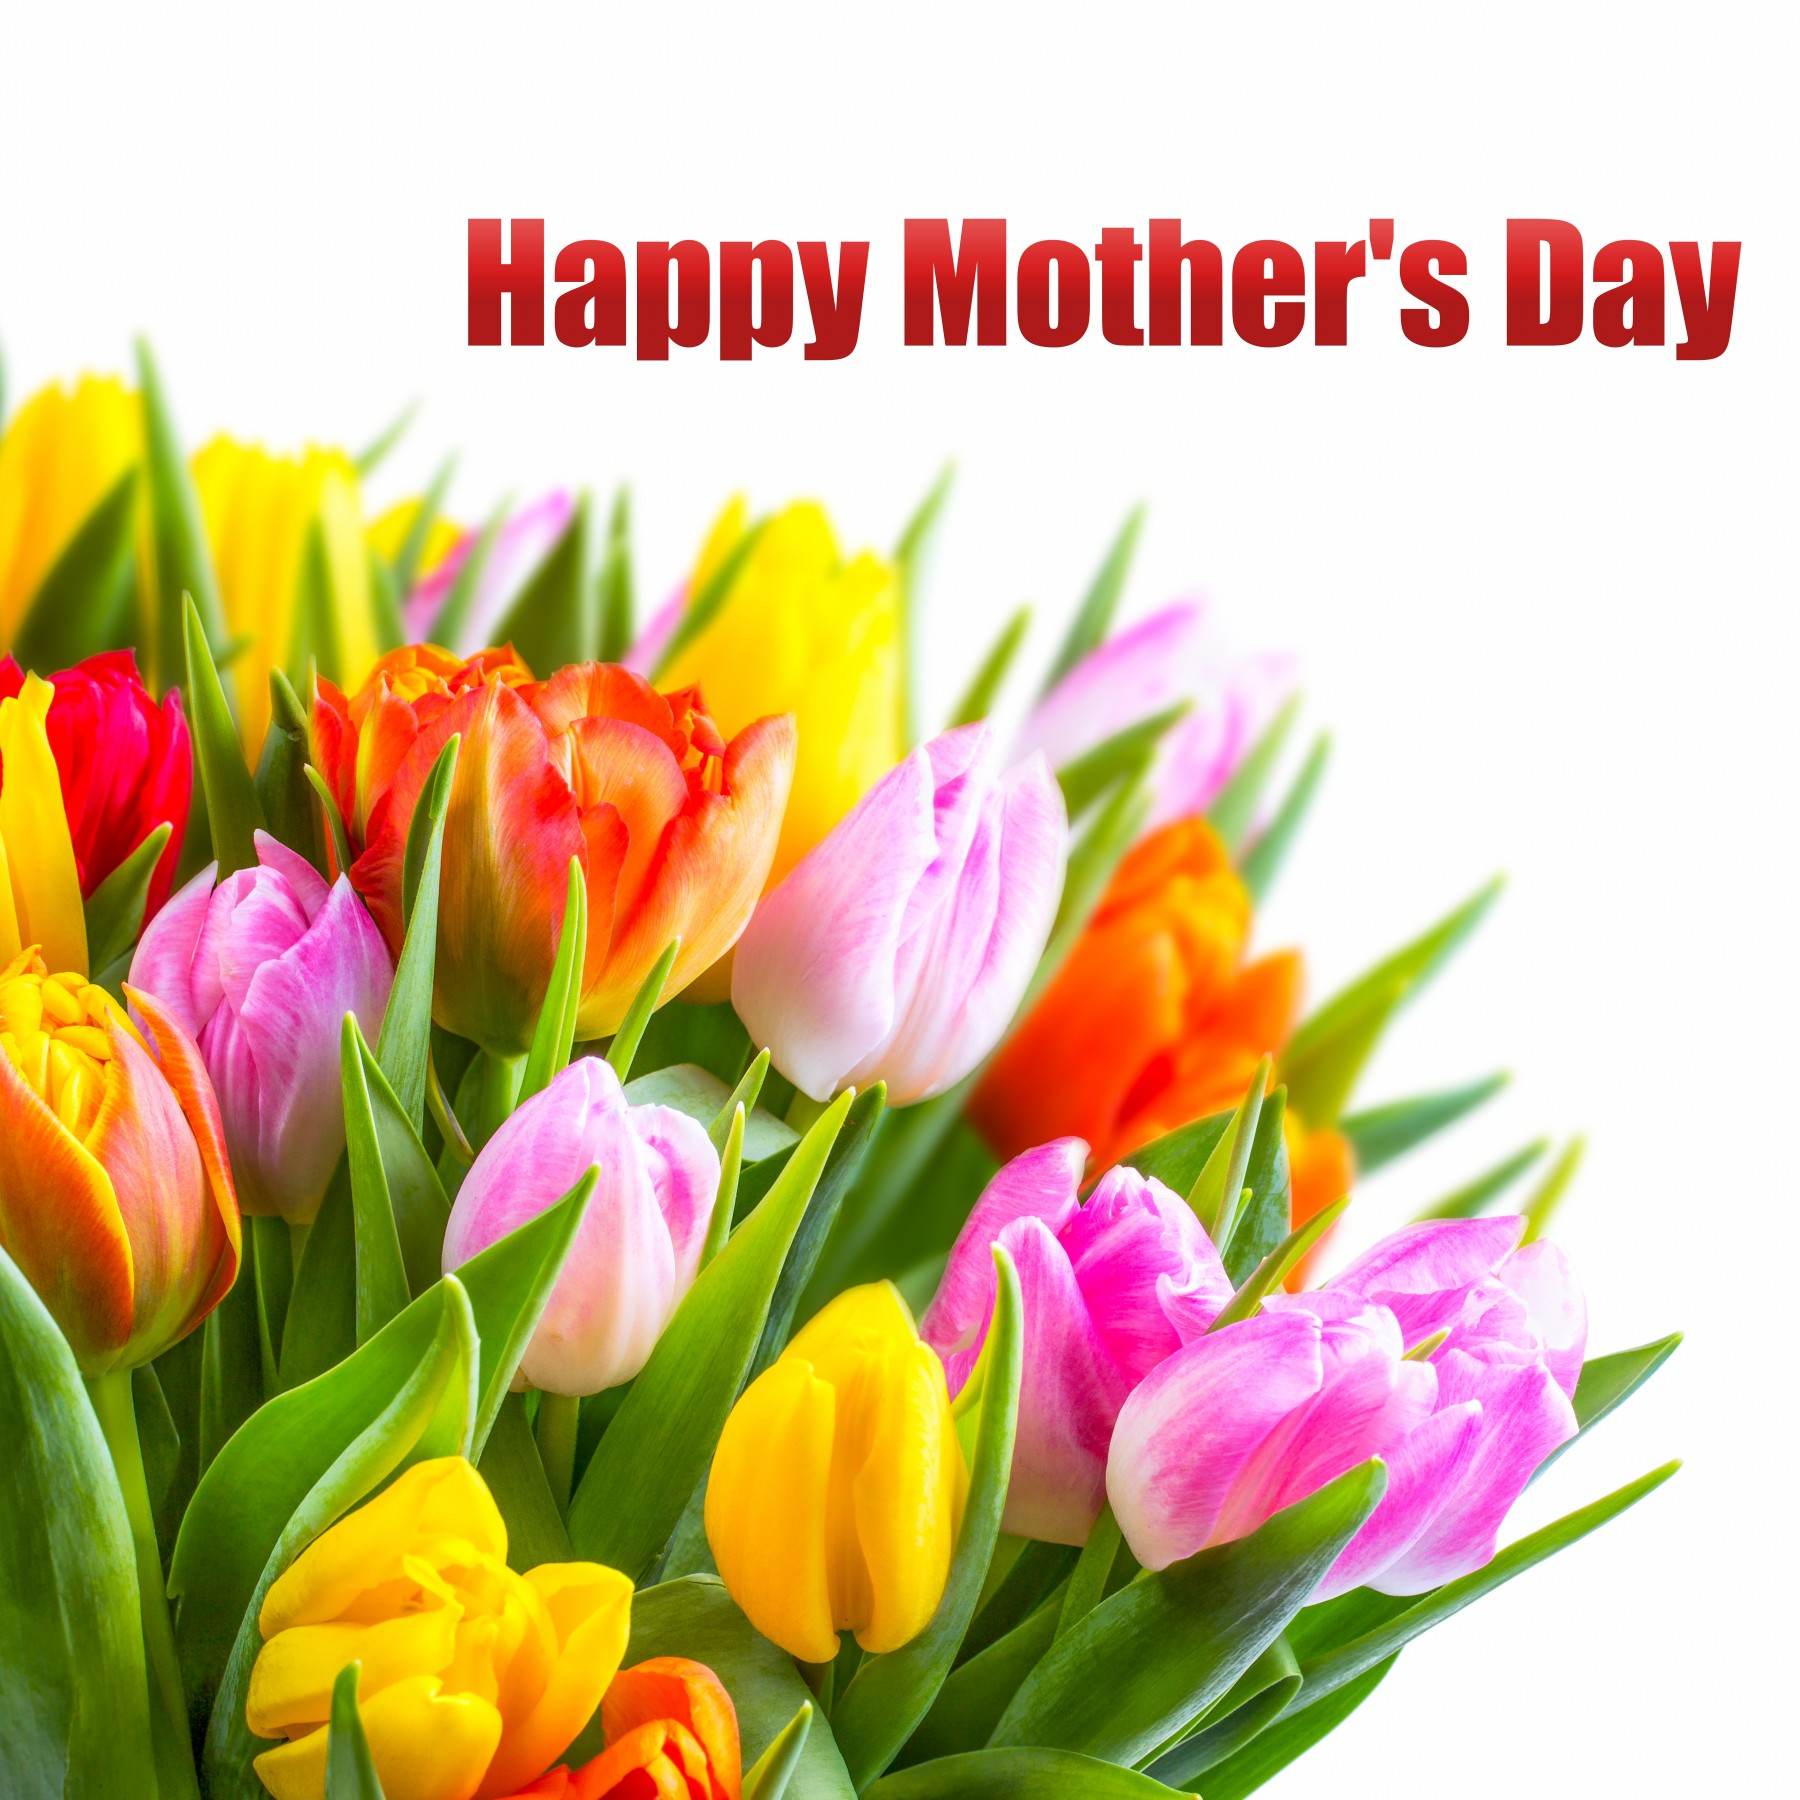 send tulips flowers for moms to celebrate mother's day  elsoar, Beautiful flower